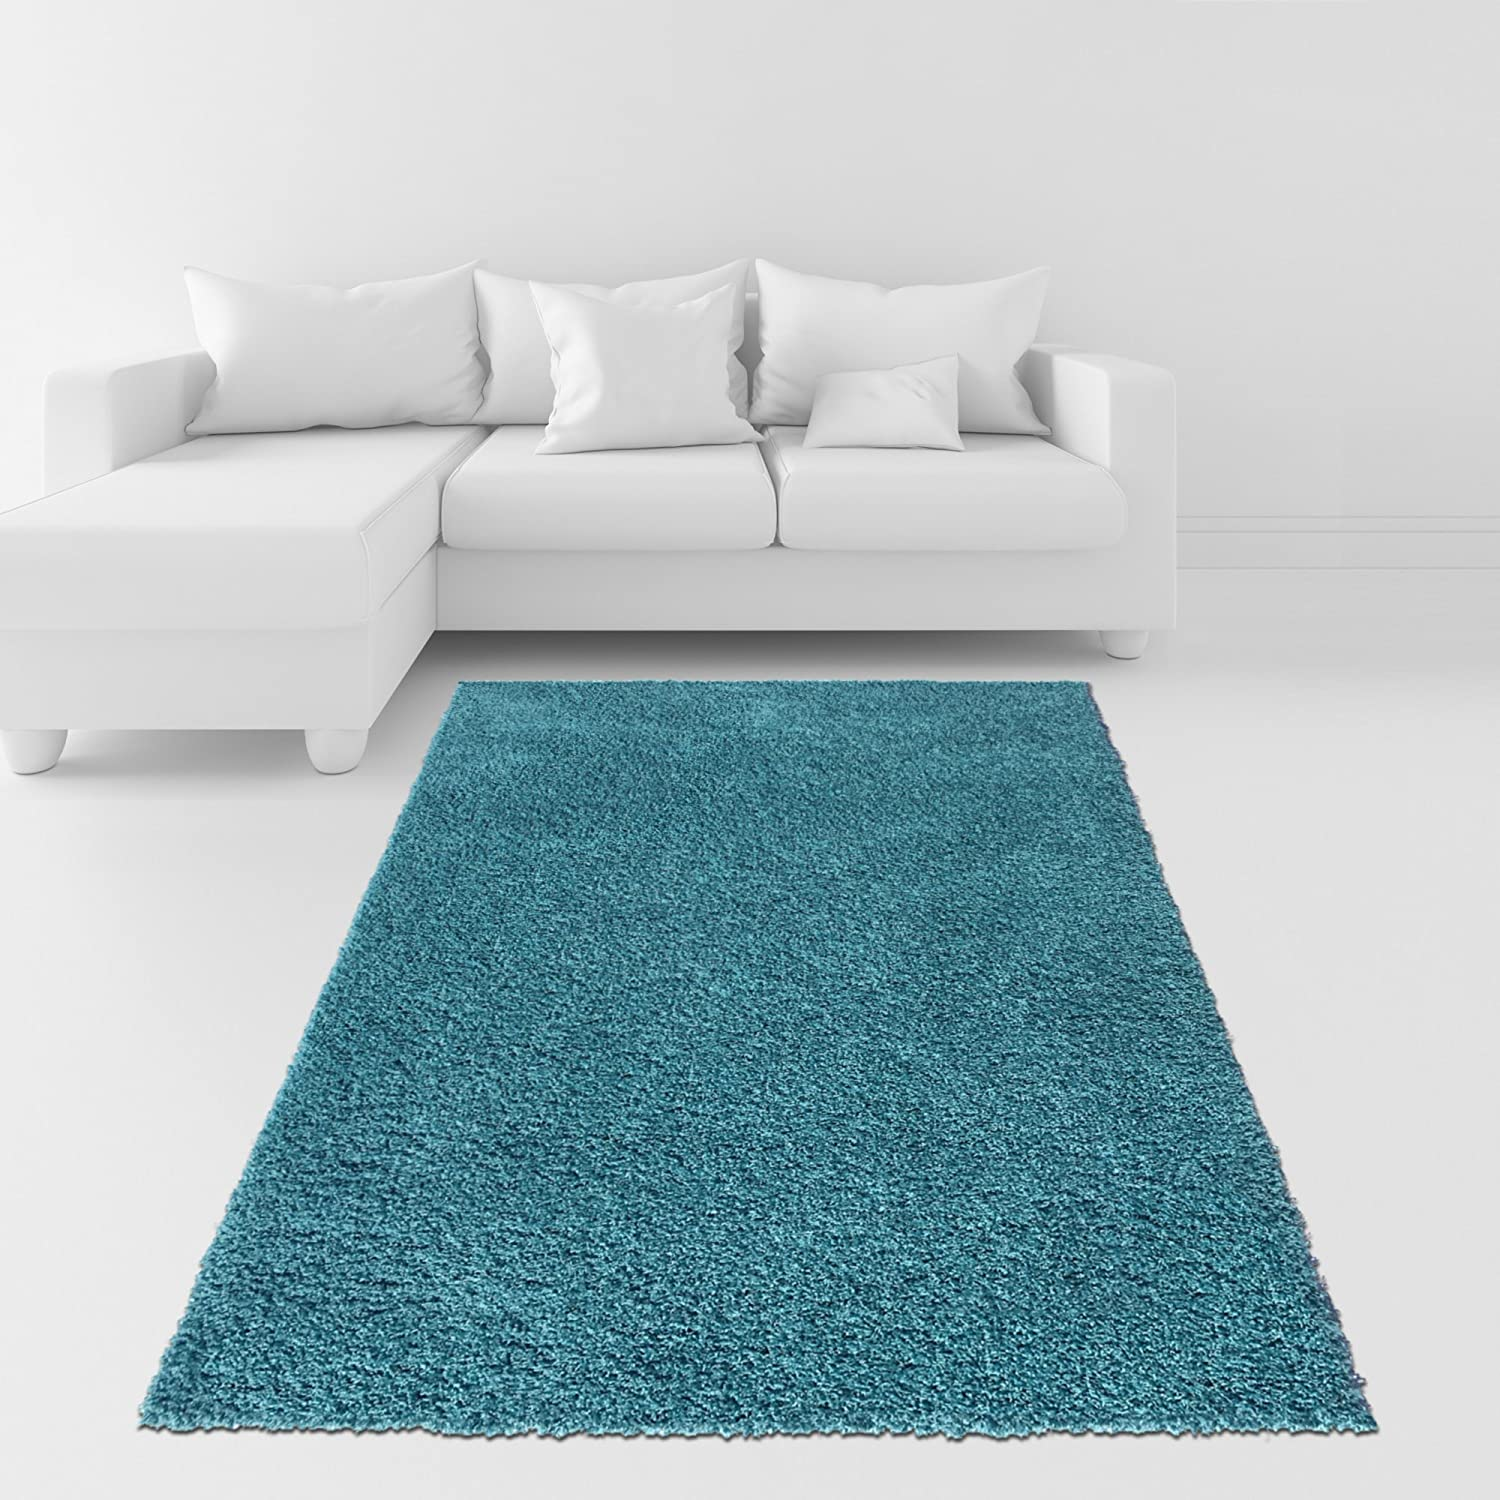 amazoncom soft shag area rug 5x7 plain solid color turquoise blue area rugs for living room bedroom kitchen decorative modern shaggy rugs - Turquoise Area Rug